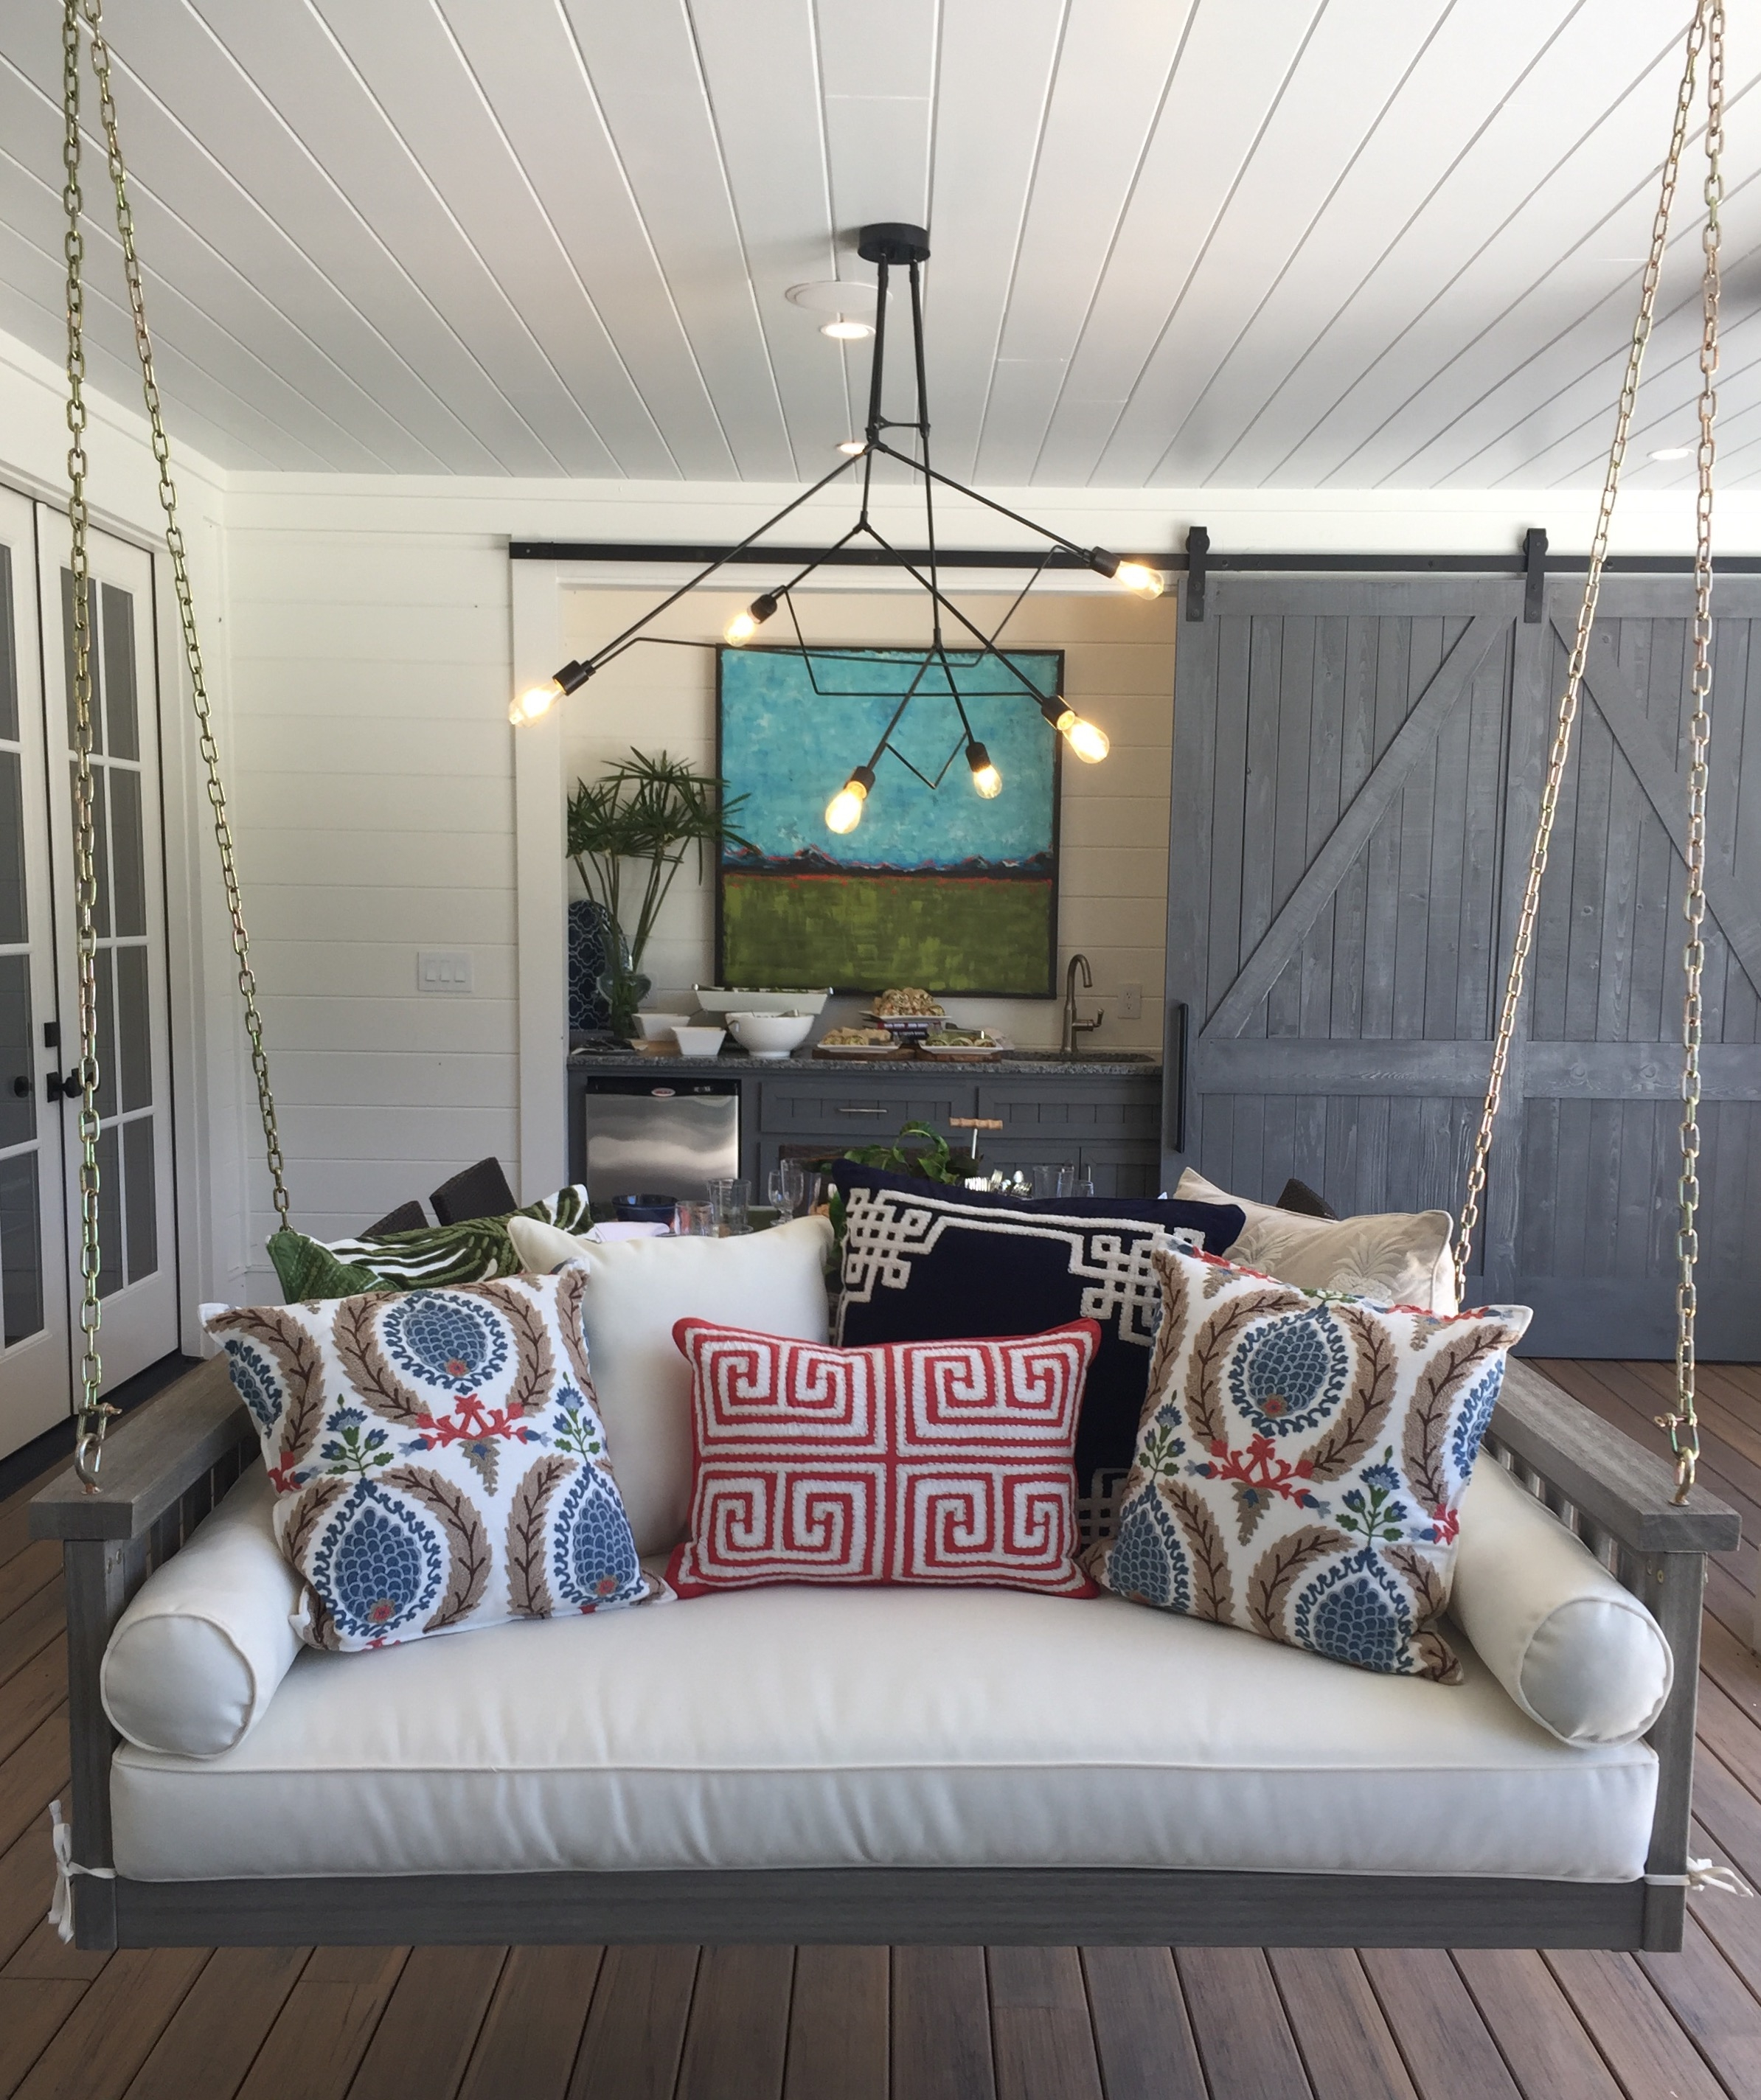 Back porch for outdoor living in the Southern Living Showcase Home, Designed by Chairma Design Group